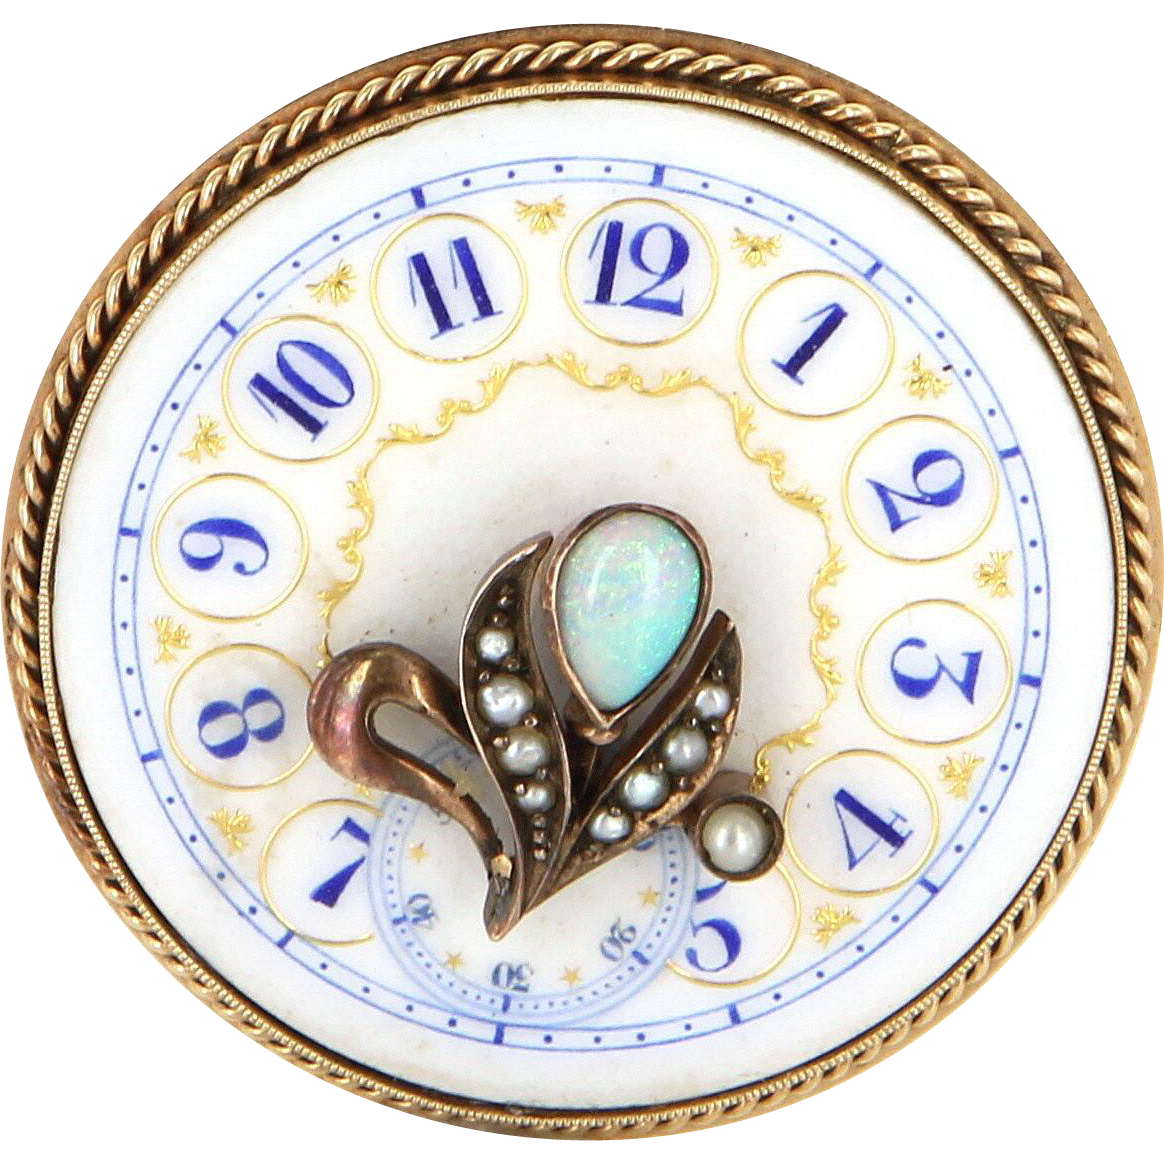 Vintage Clock Face Brooch Pin 14 Karat Gold Opal Pearl Estate Fine Jewelry Heirloom